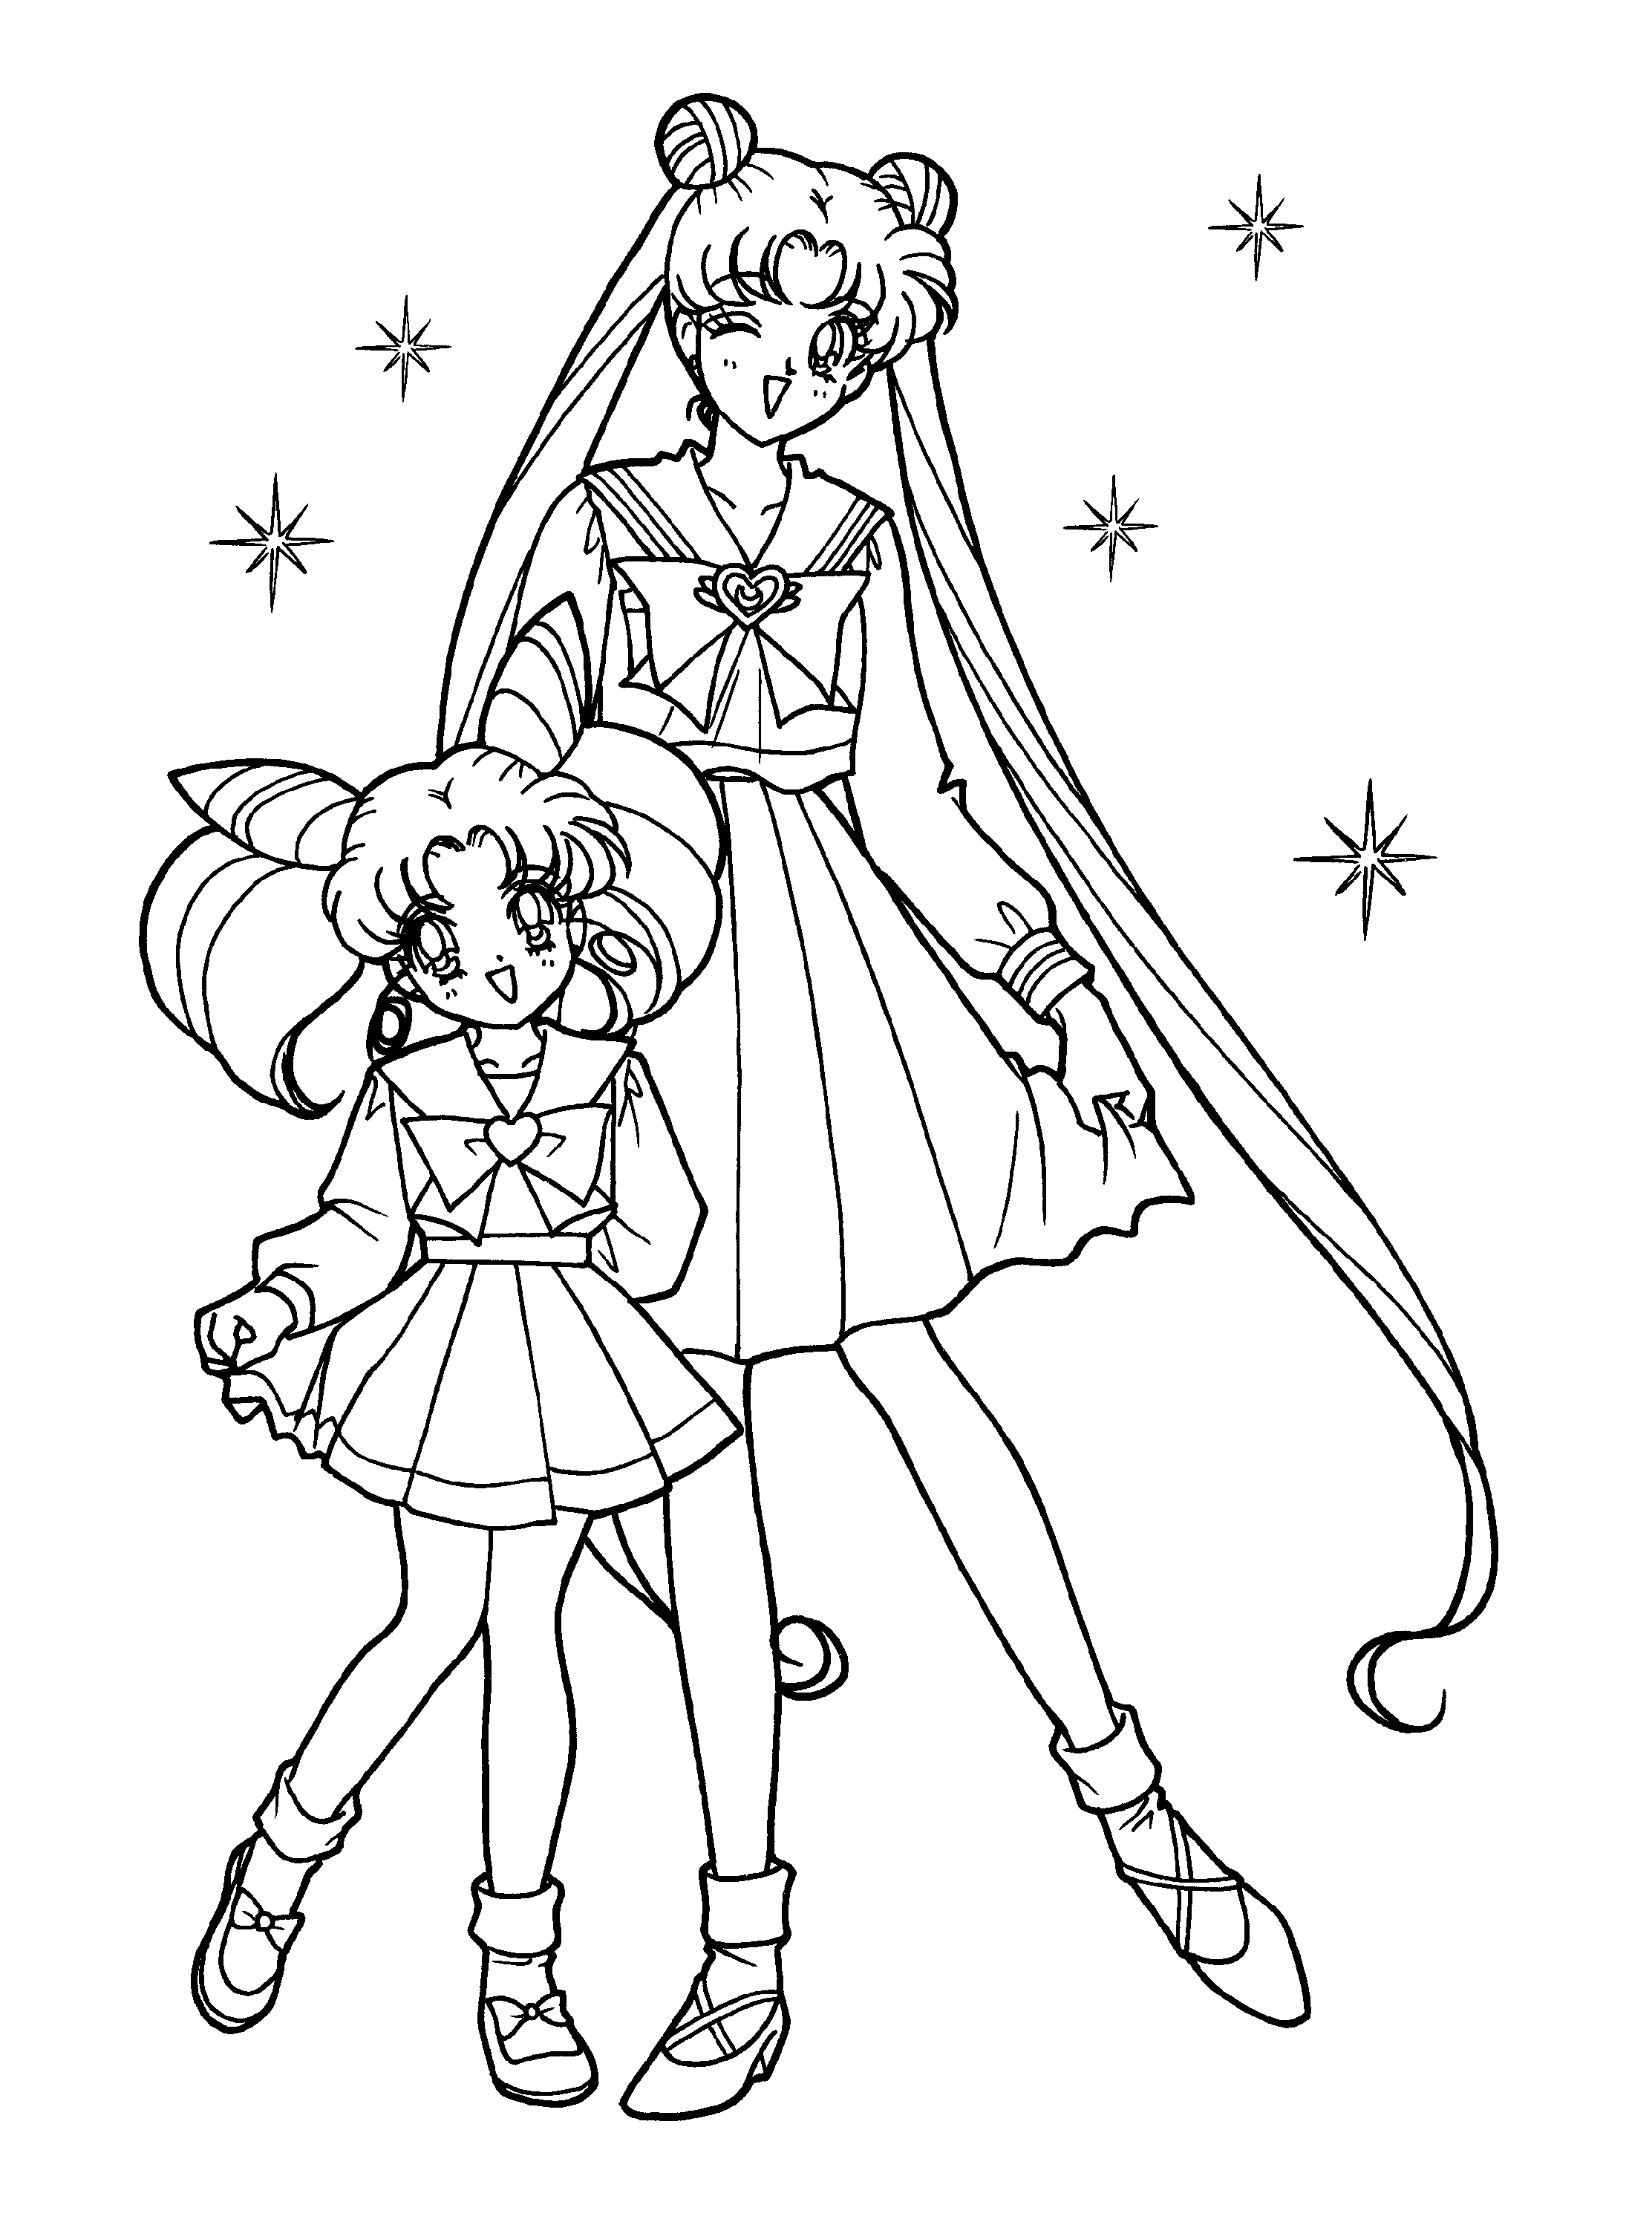 sailor moon coloring pages free printable sailor moon coloring pages for kids pages coloring sailor moon